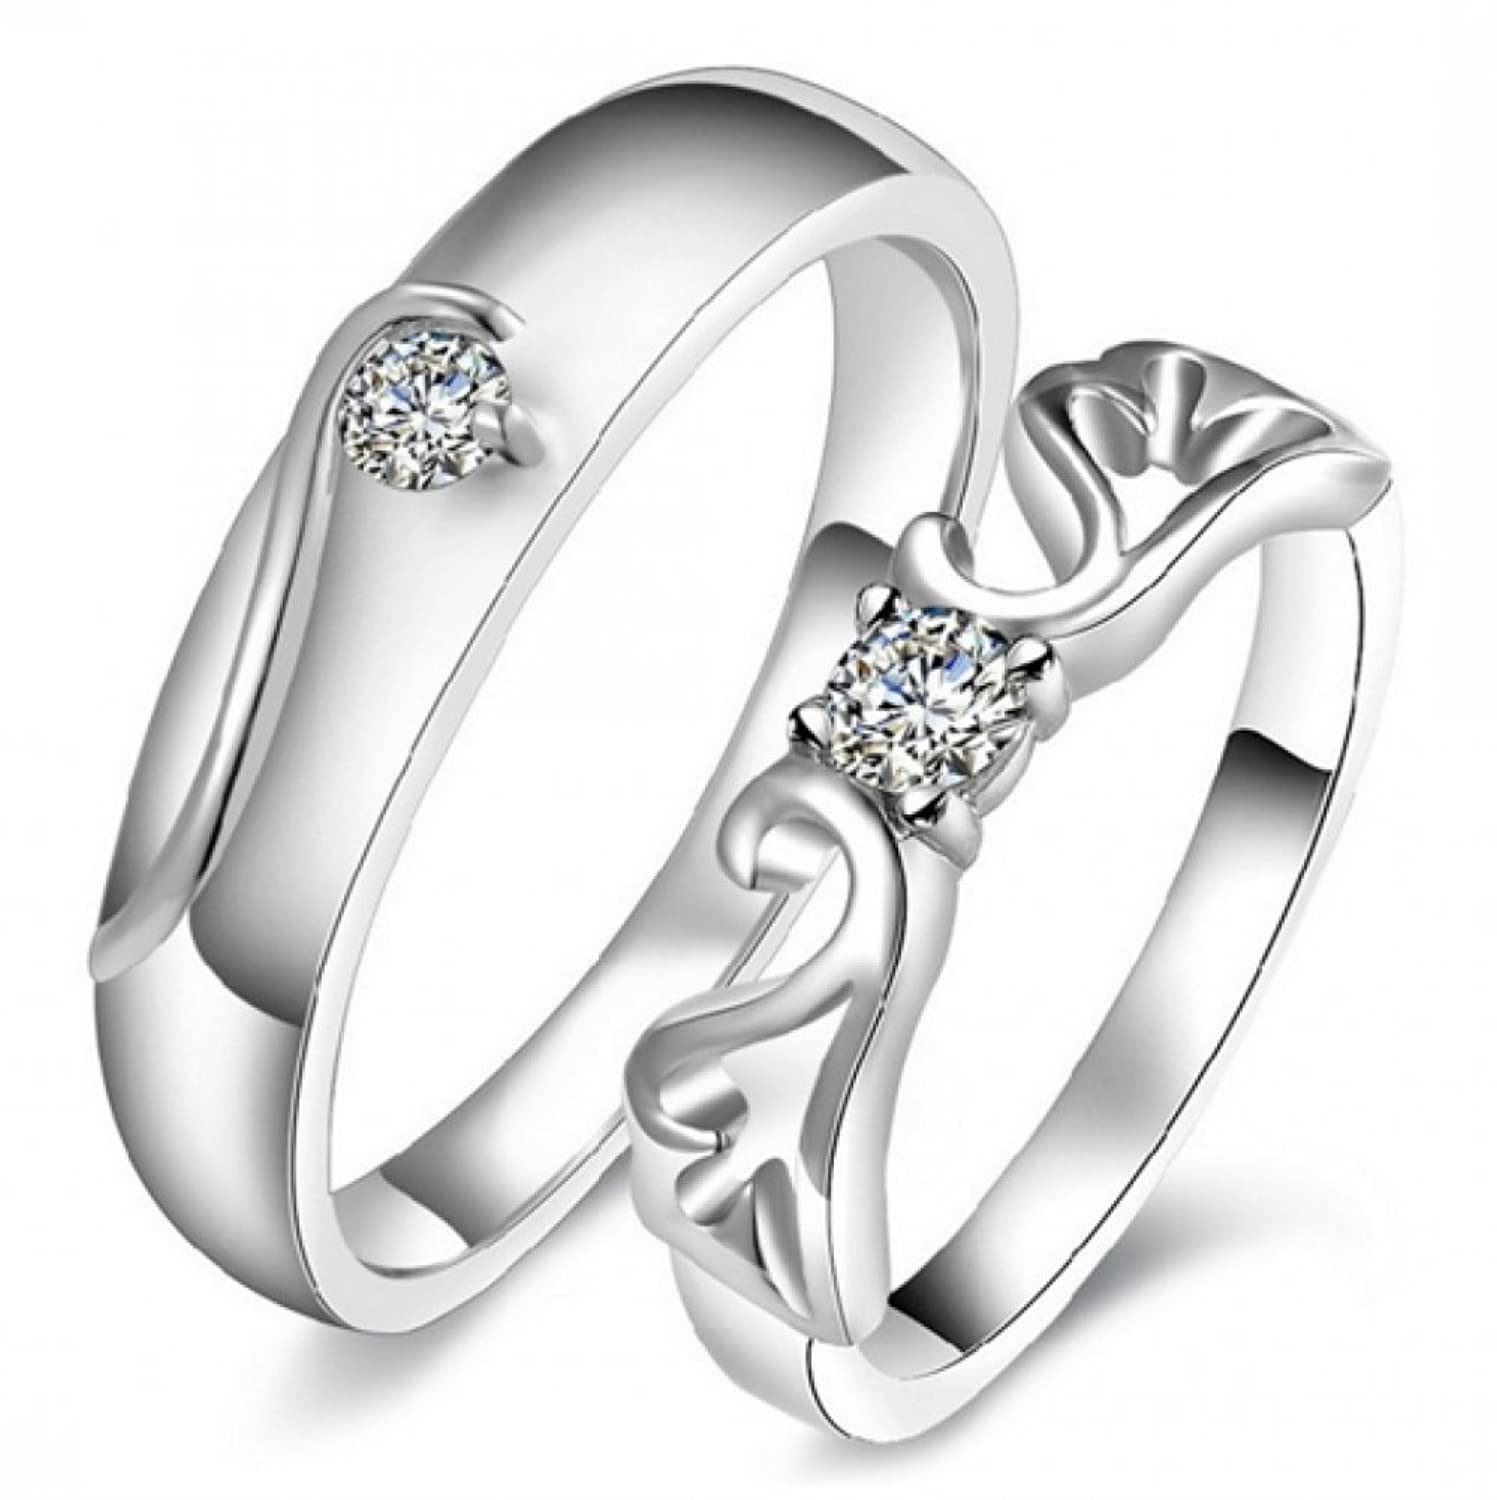 fashion rings jewelry couple jc wholesale set stainless steel engagement